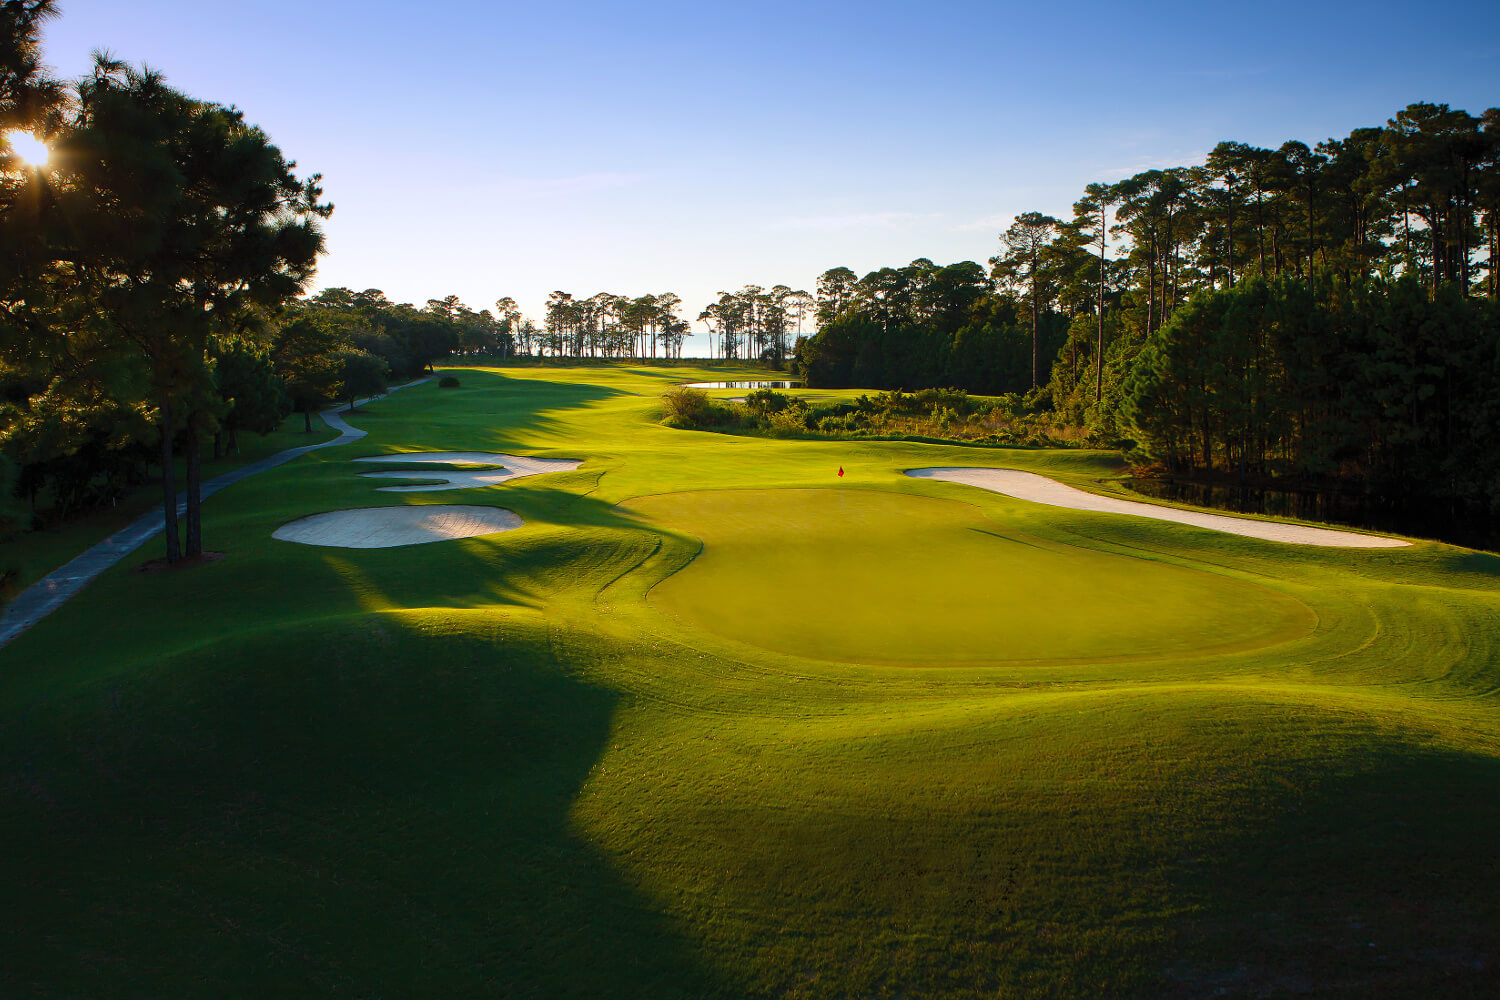 Coastal Alabama Golf To Host 3rd Annual Coastal Alabama Couples Classic